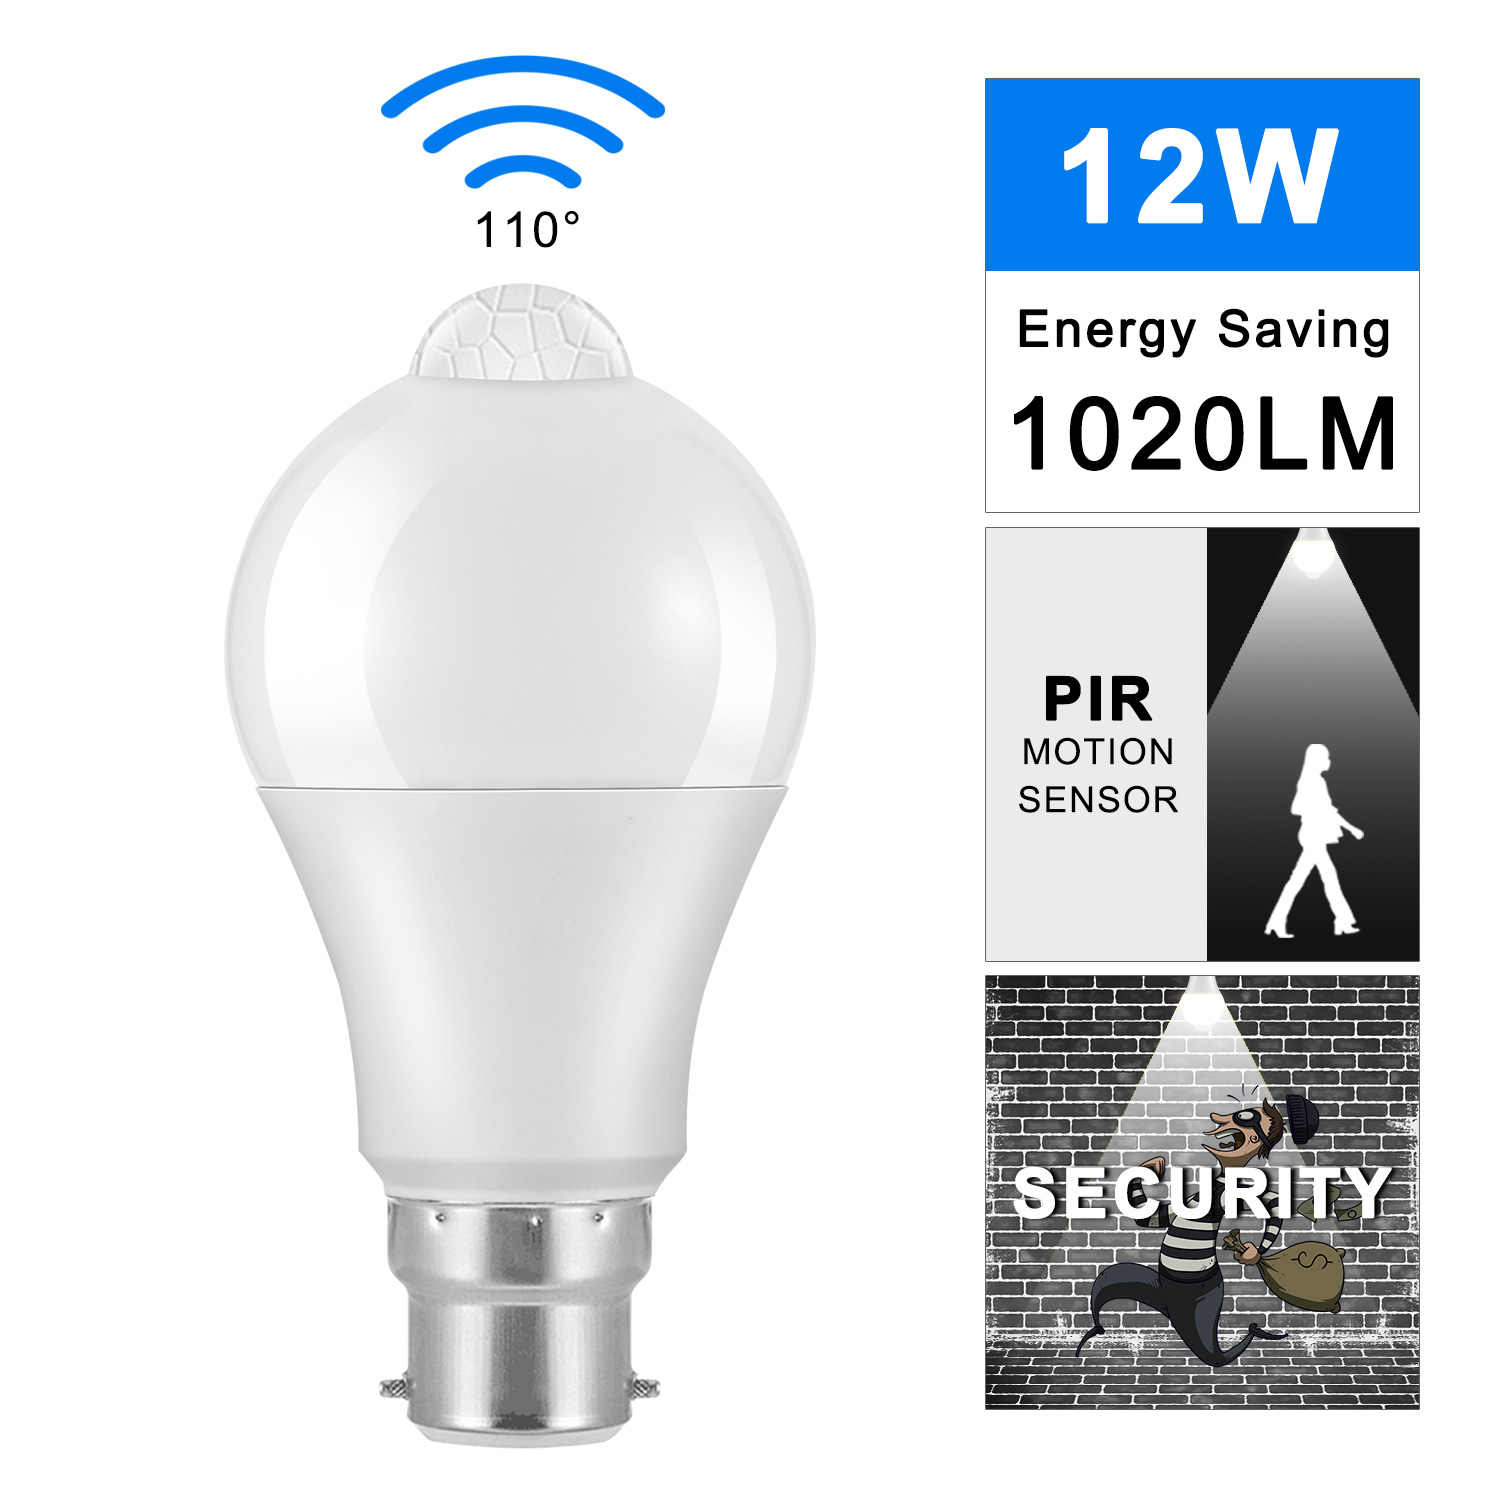 12W B27 B22 LED Bulb Light Motion Sensor PIR Sensor AC 85-265V Energy-Saving LED Lamp Bulb 6000K Cool White For Entrance